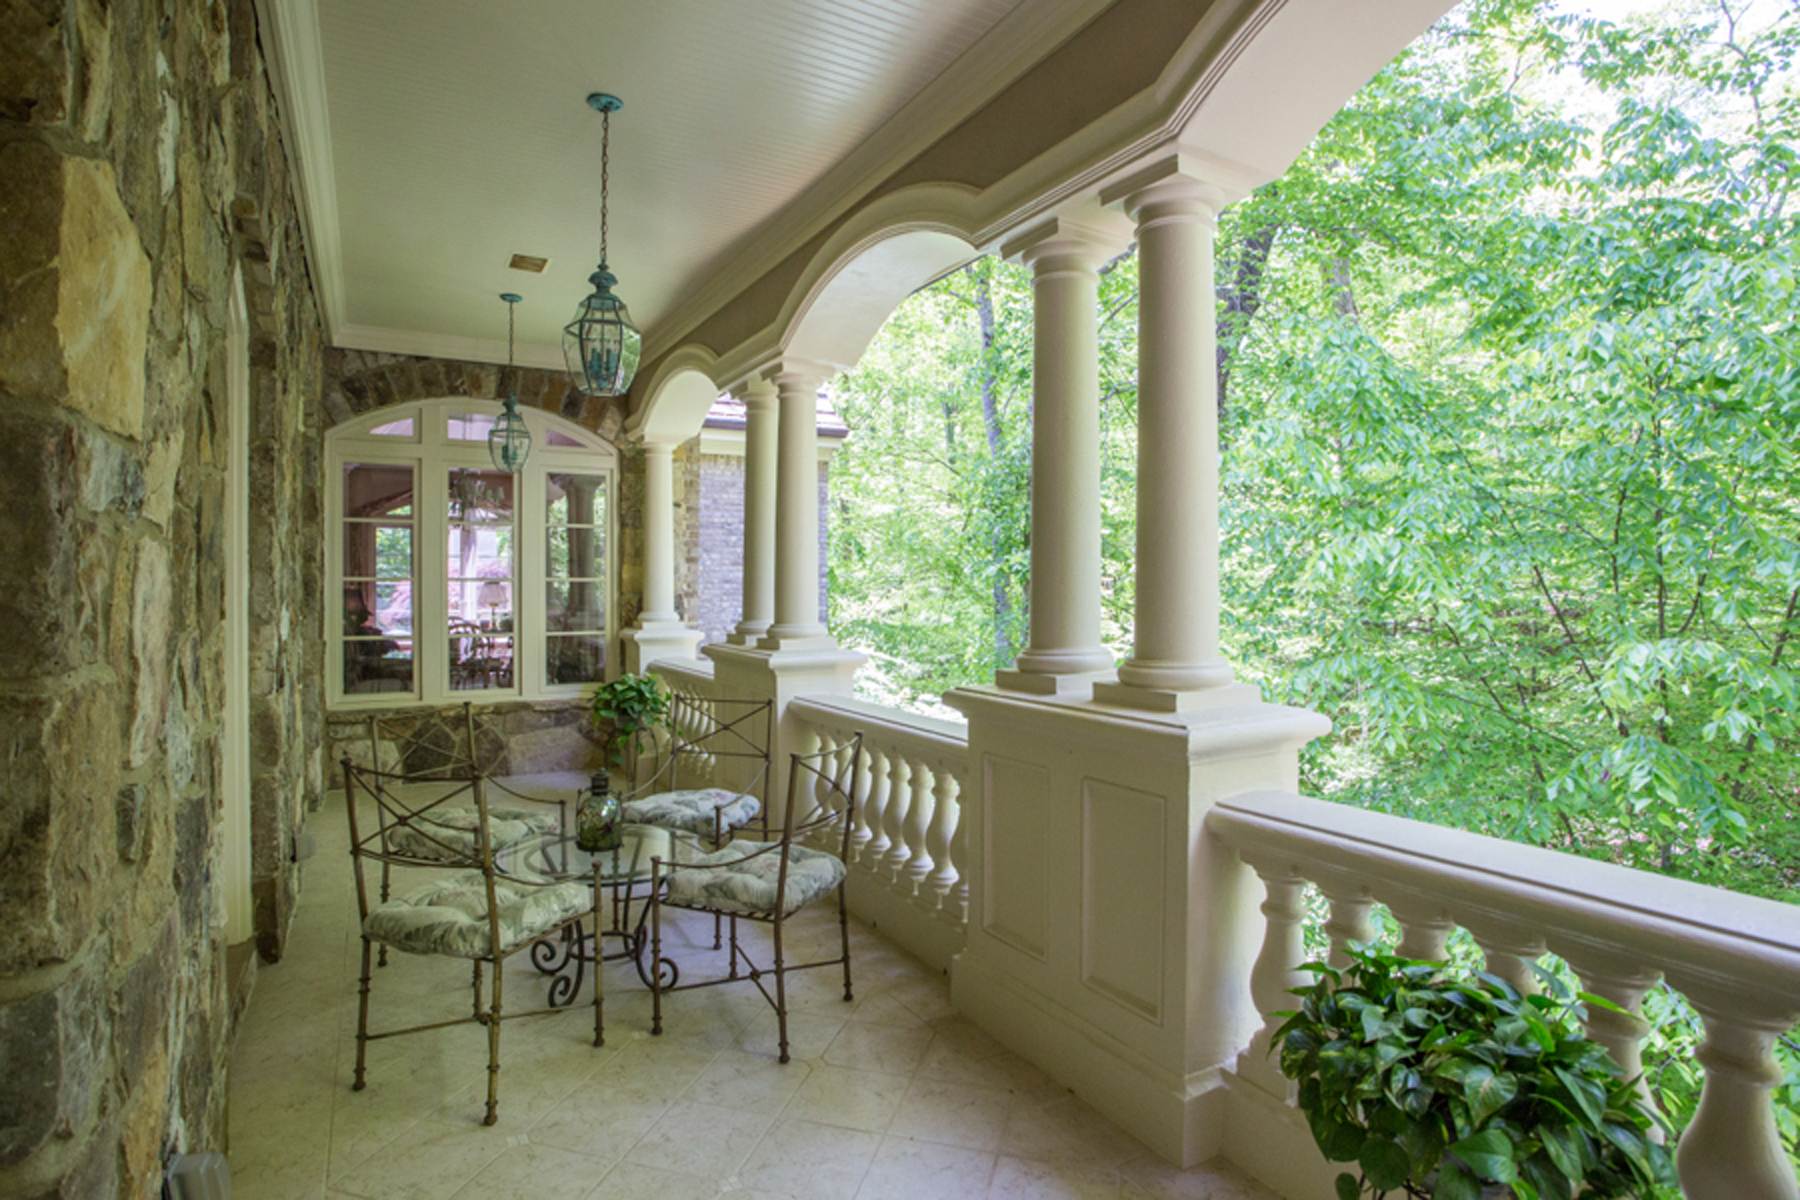 Additional photo for property listing at Elegant Home Nestled Among The Trees 5151 Long Island Drive NW Atlanta, Джорджия 30327 Соединенные Штаты